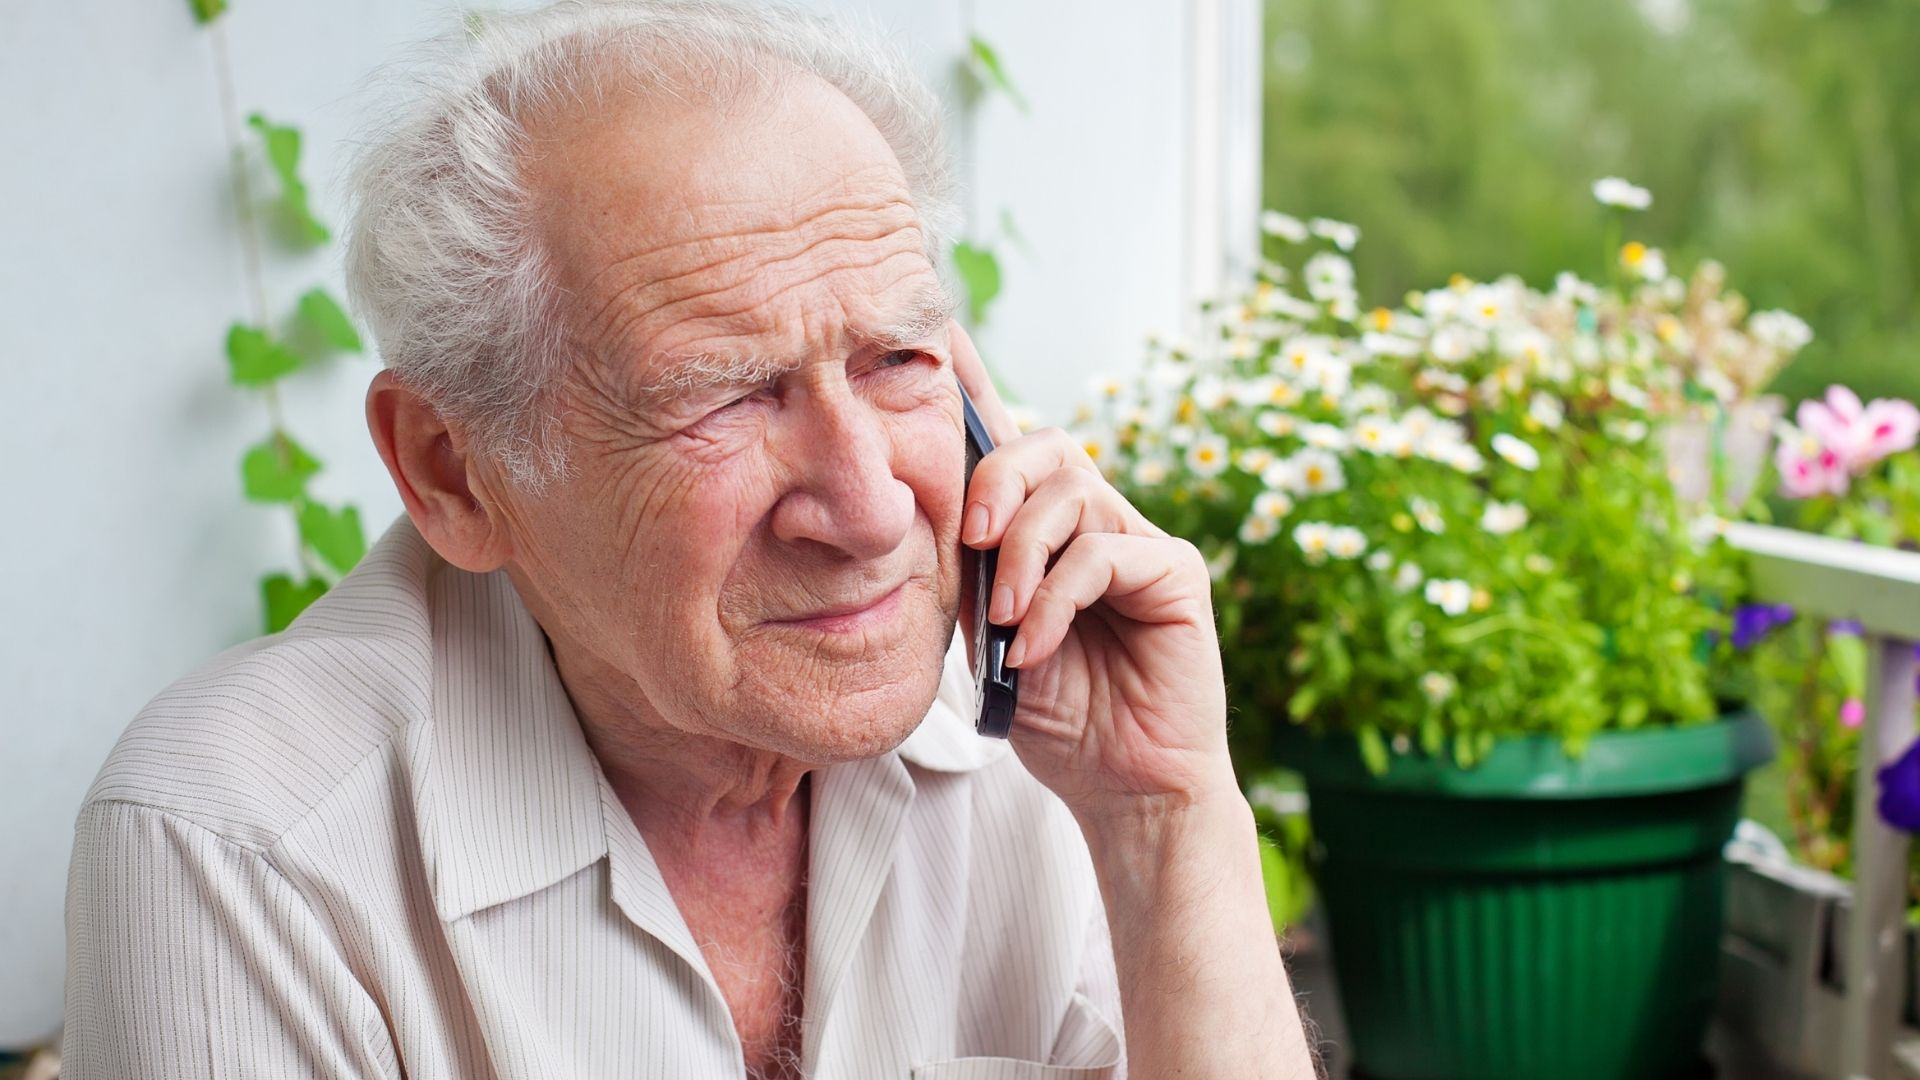 an older man sits with a phone pressed to his ear